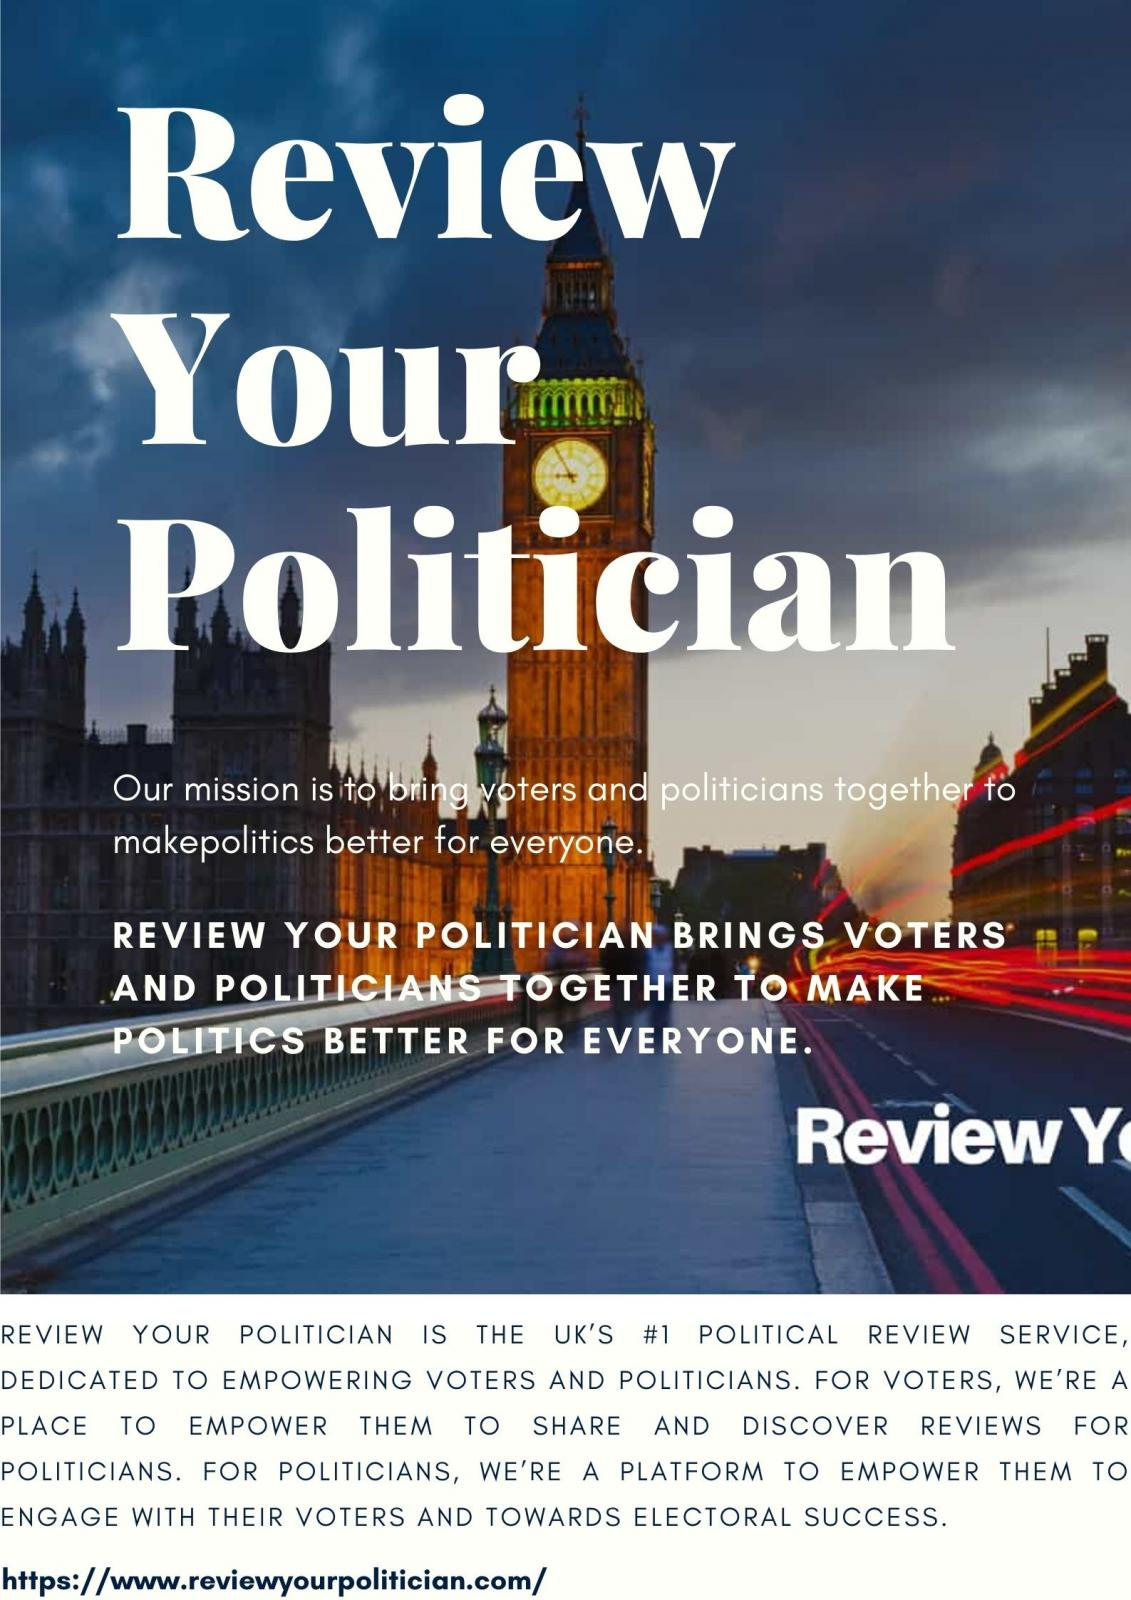 Review Your Politician | We Connect Voters With UK Politicians